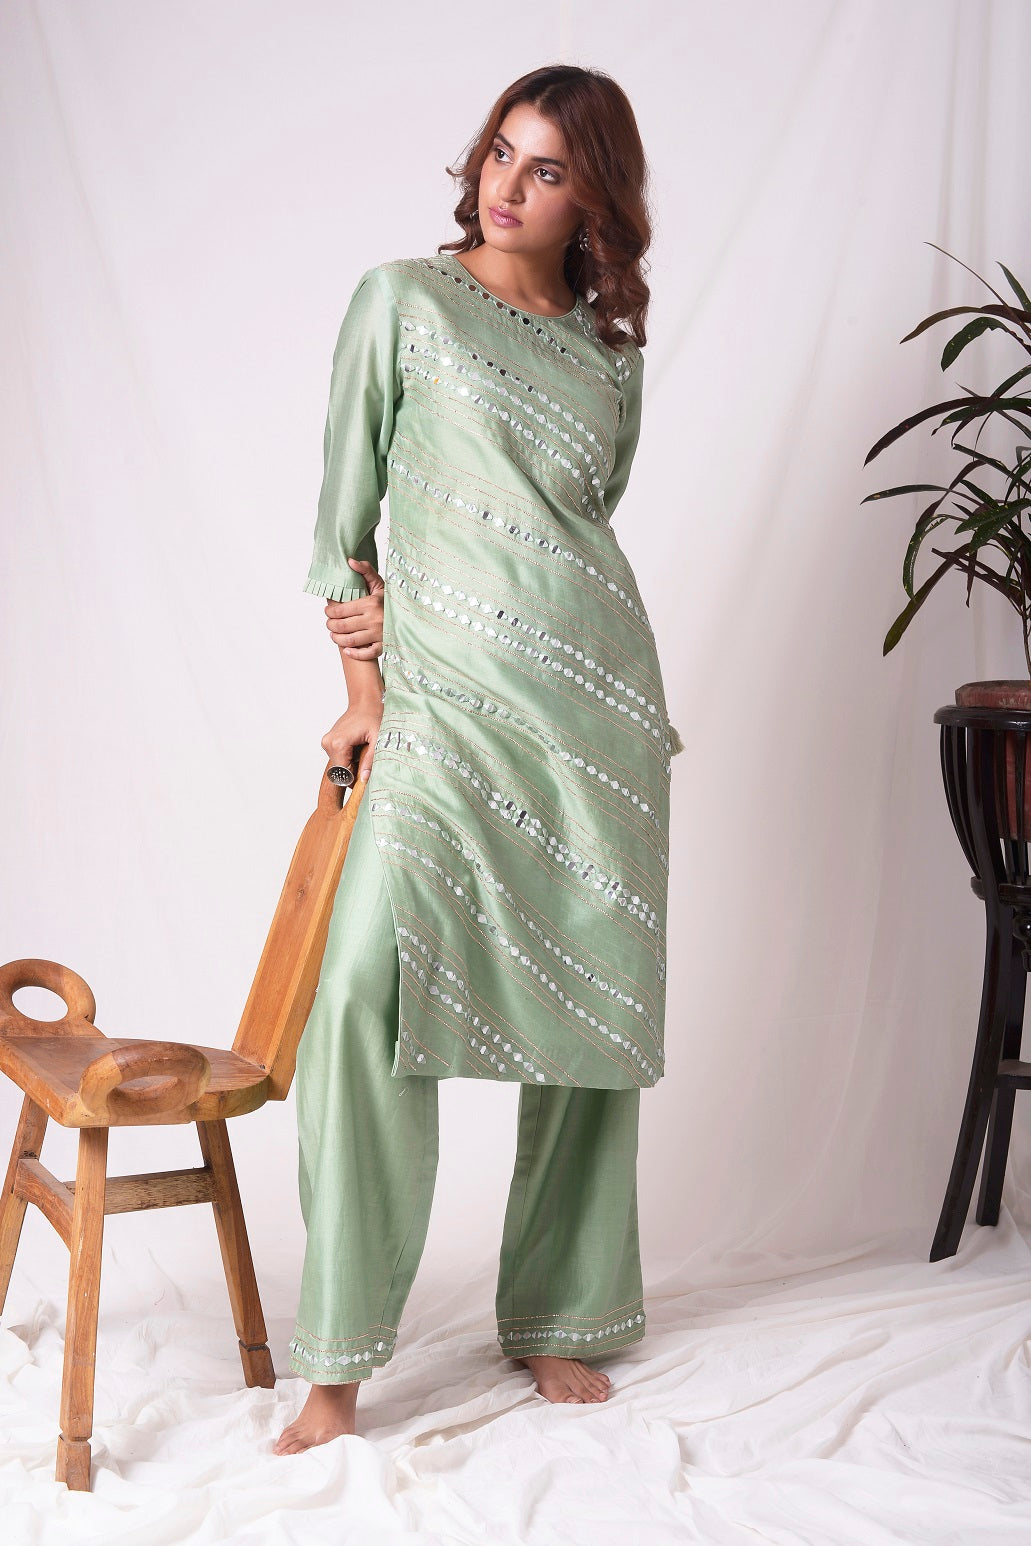 Green Chanderi With Paat Work Suit Online in USA-full view